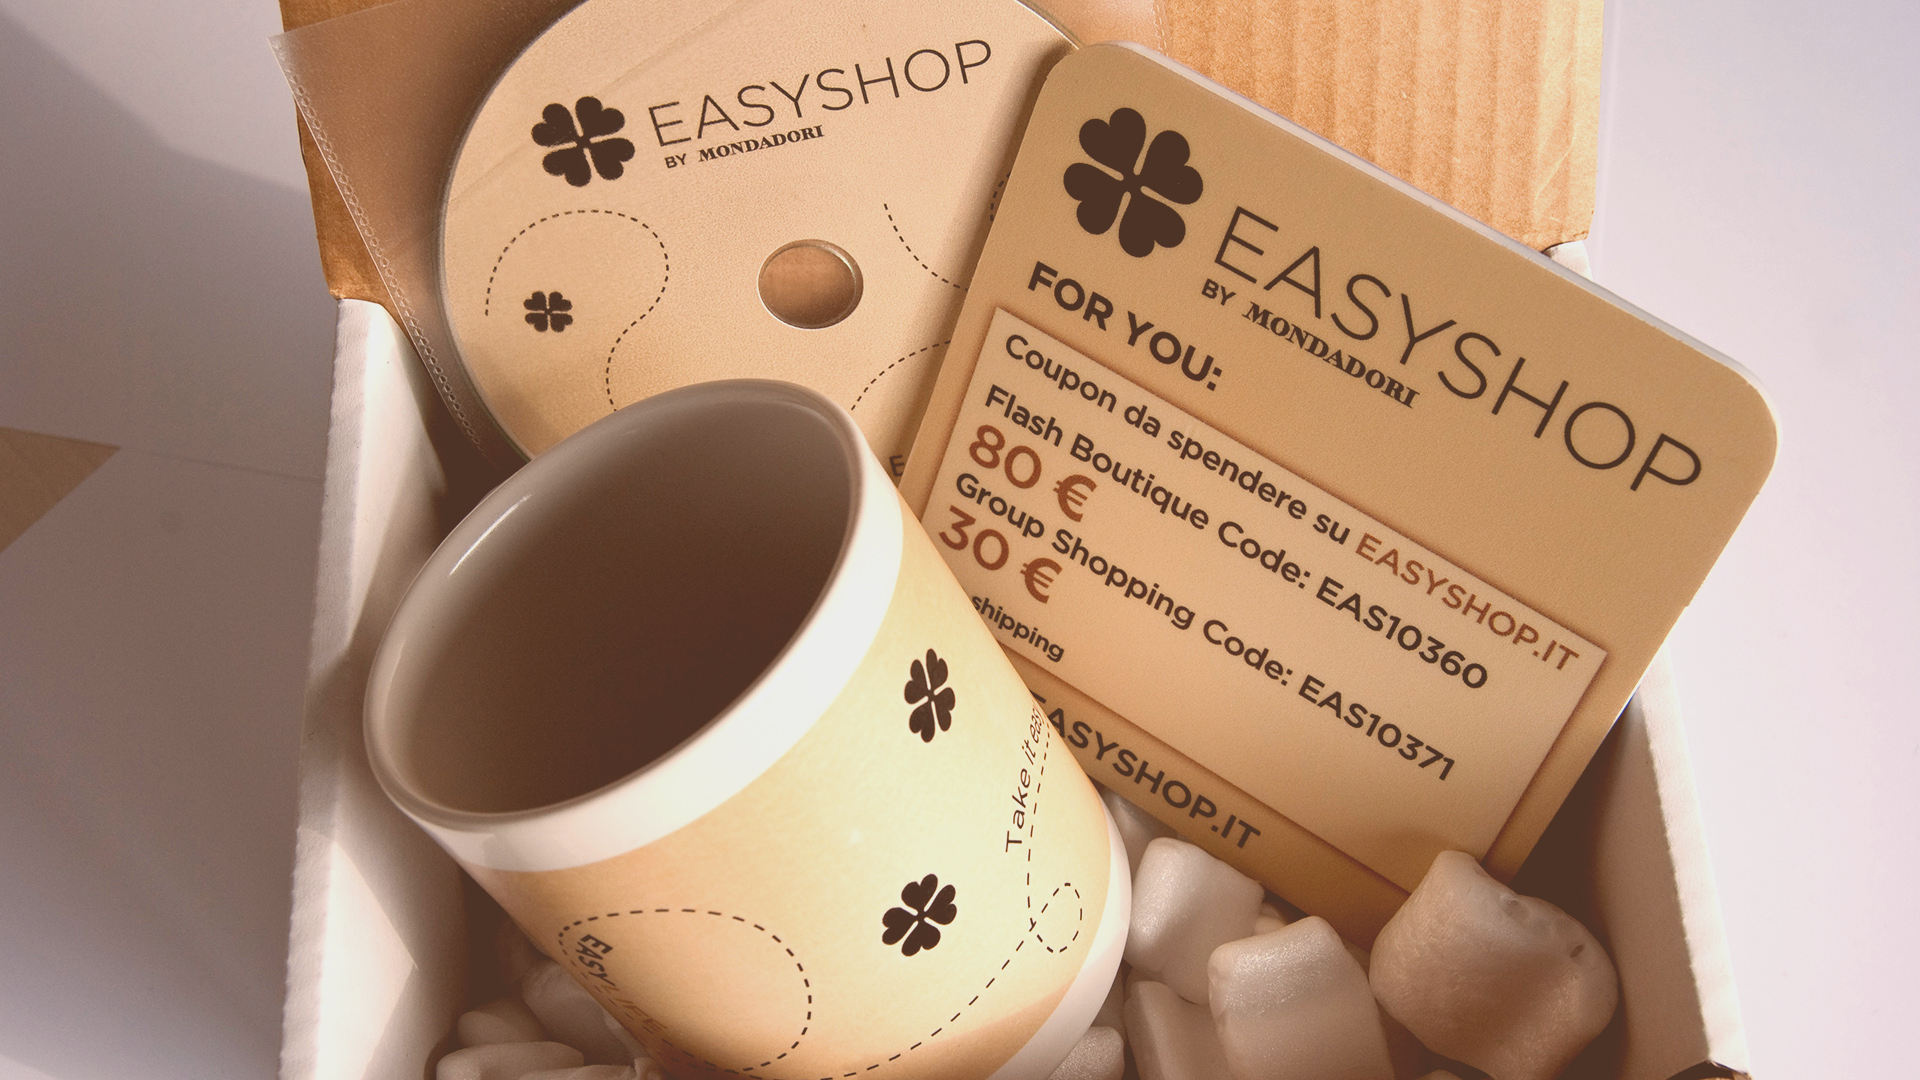 Influencer marketing per Easyshop, sito e-commerce di Mondadori